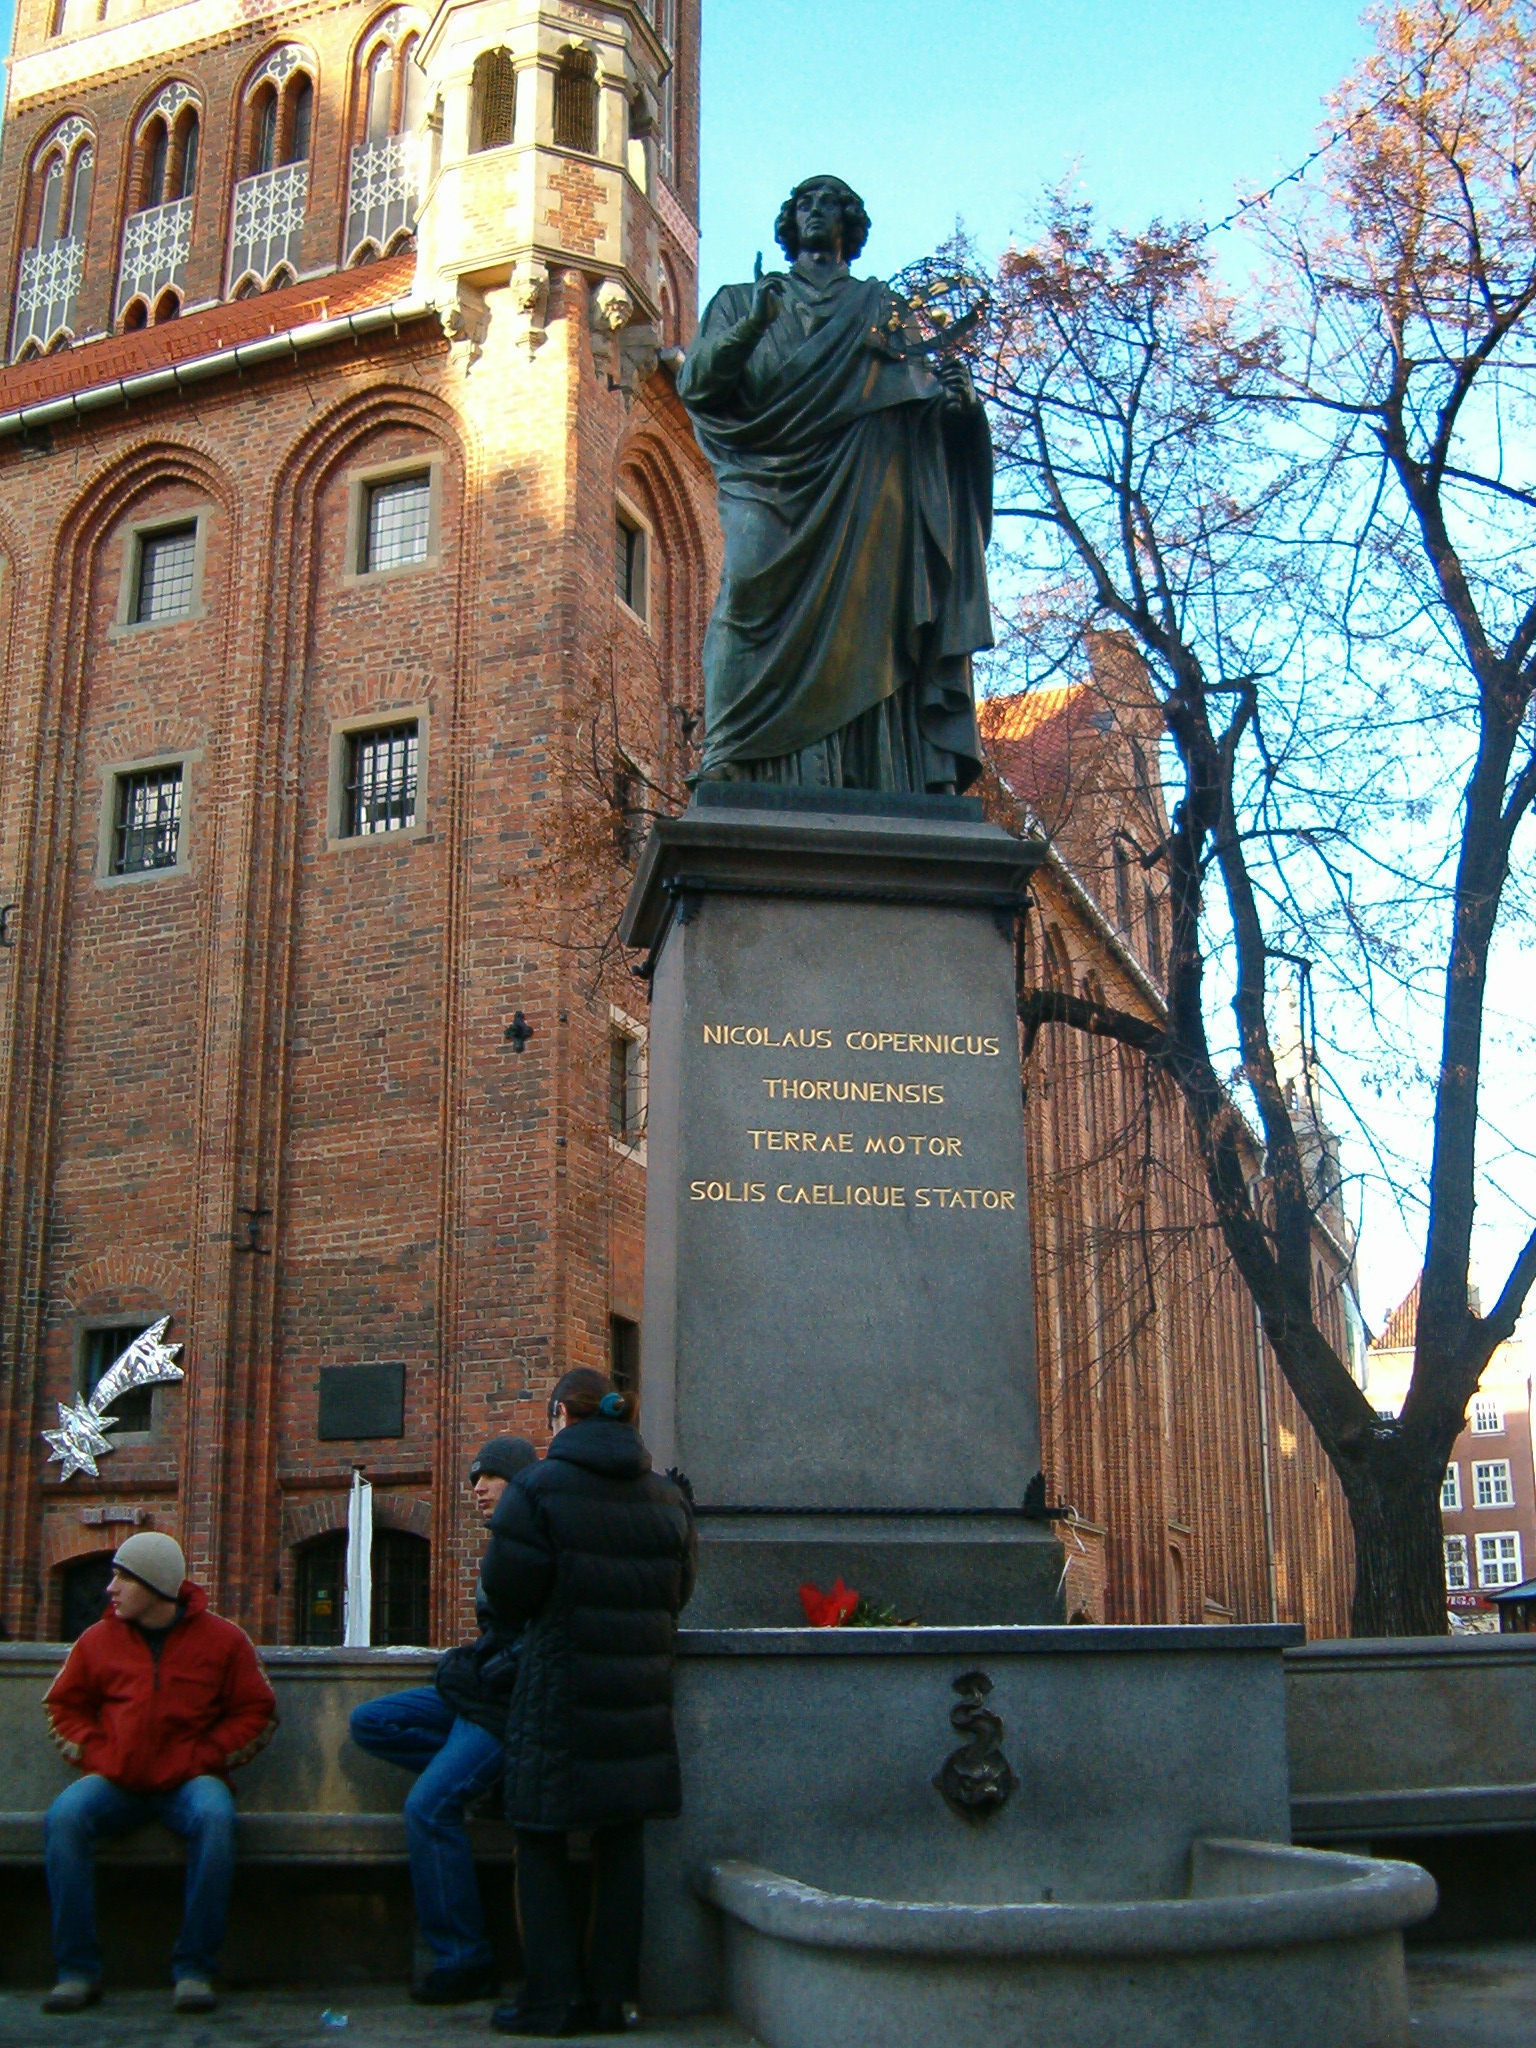 The Monument to Copernicus erected 1853 in Thorn